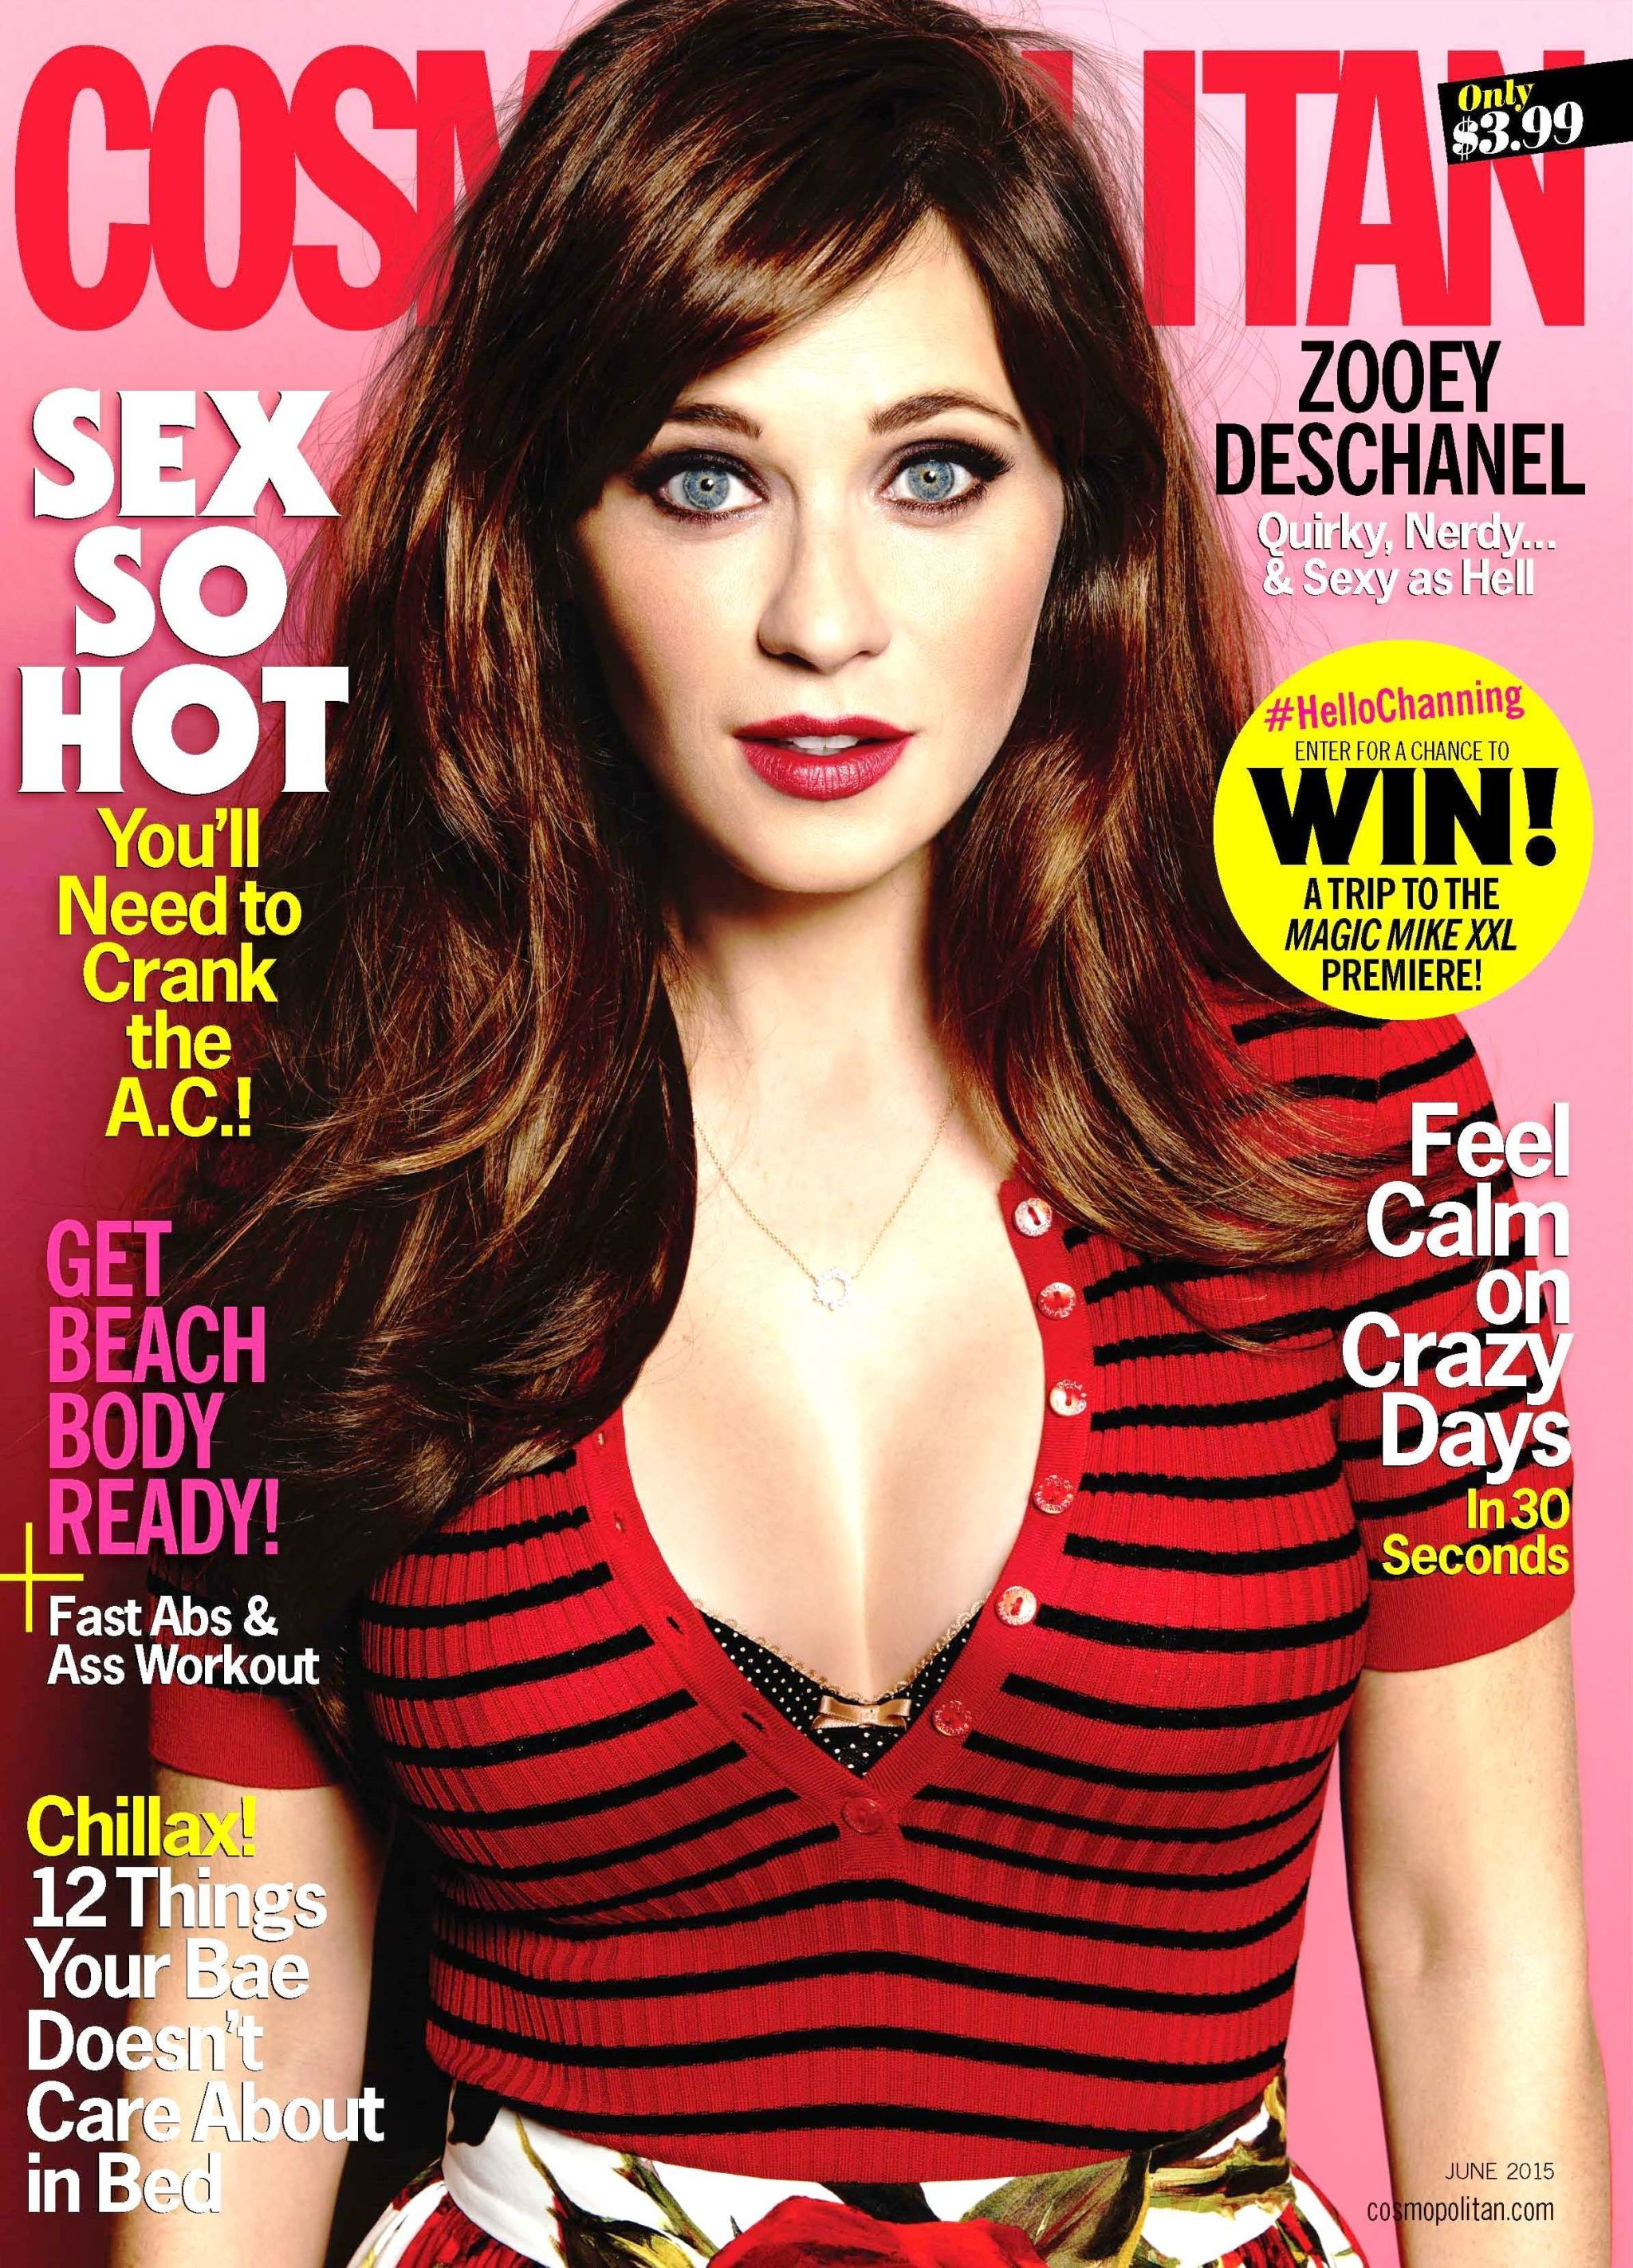 Cosmopolitan love sexual health